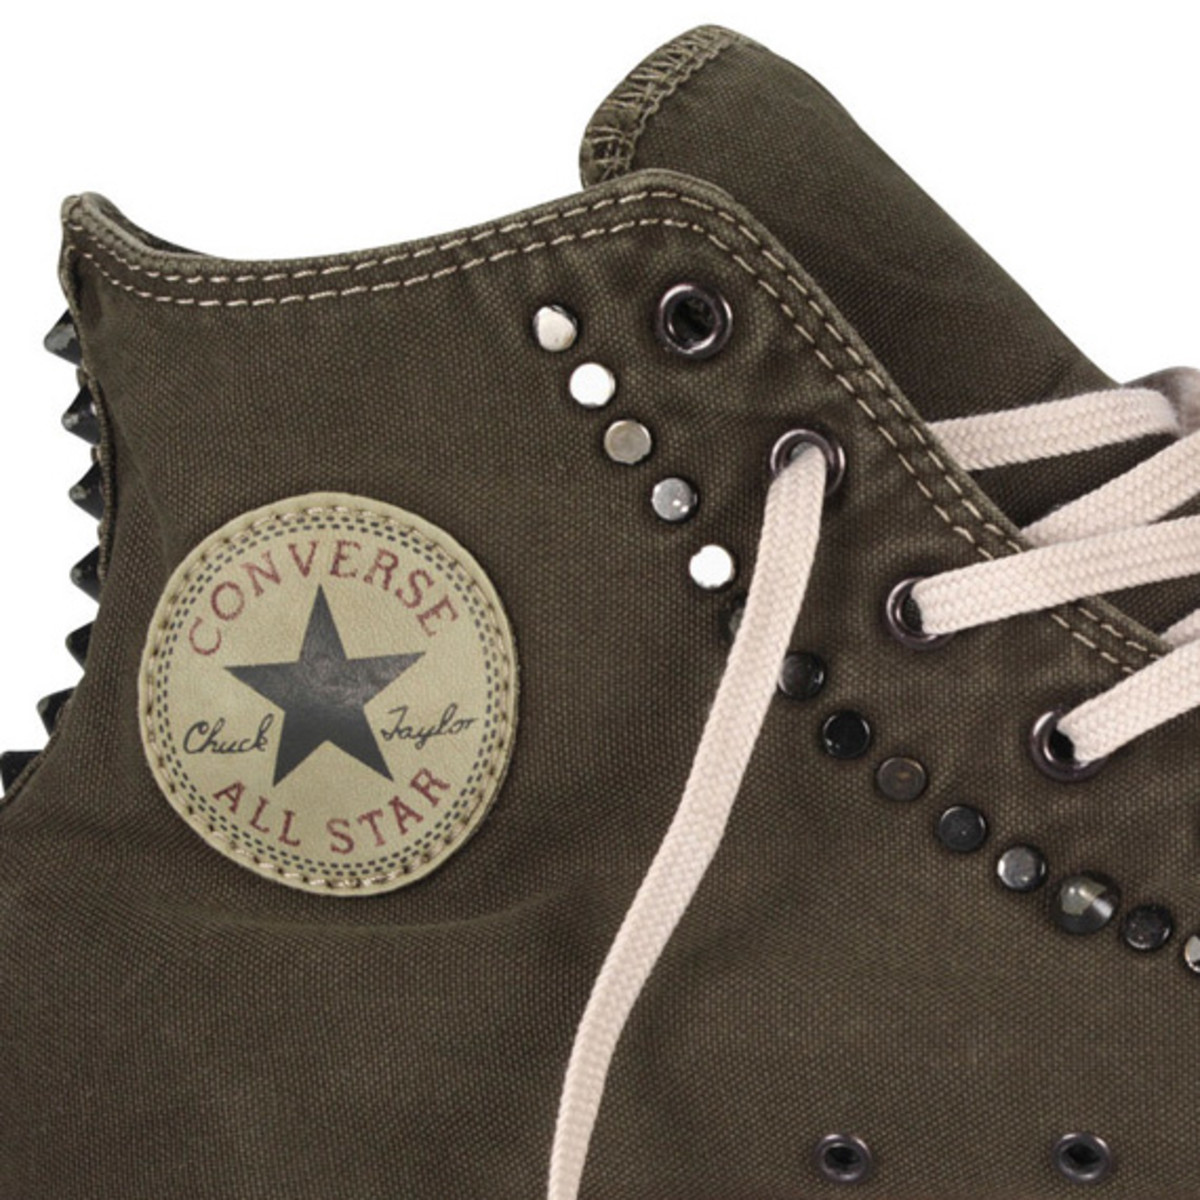 converse-chuck-taylor-all-star-collar-studs-fall-2013-collection-21